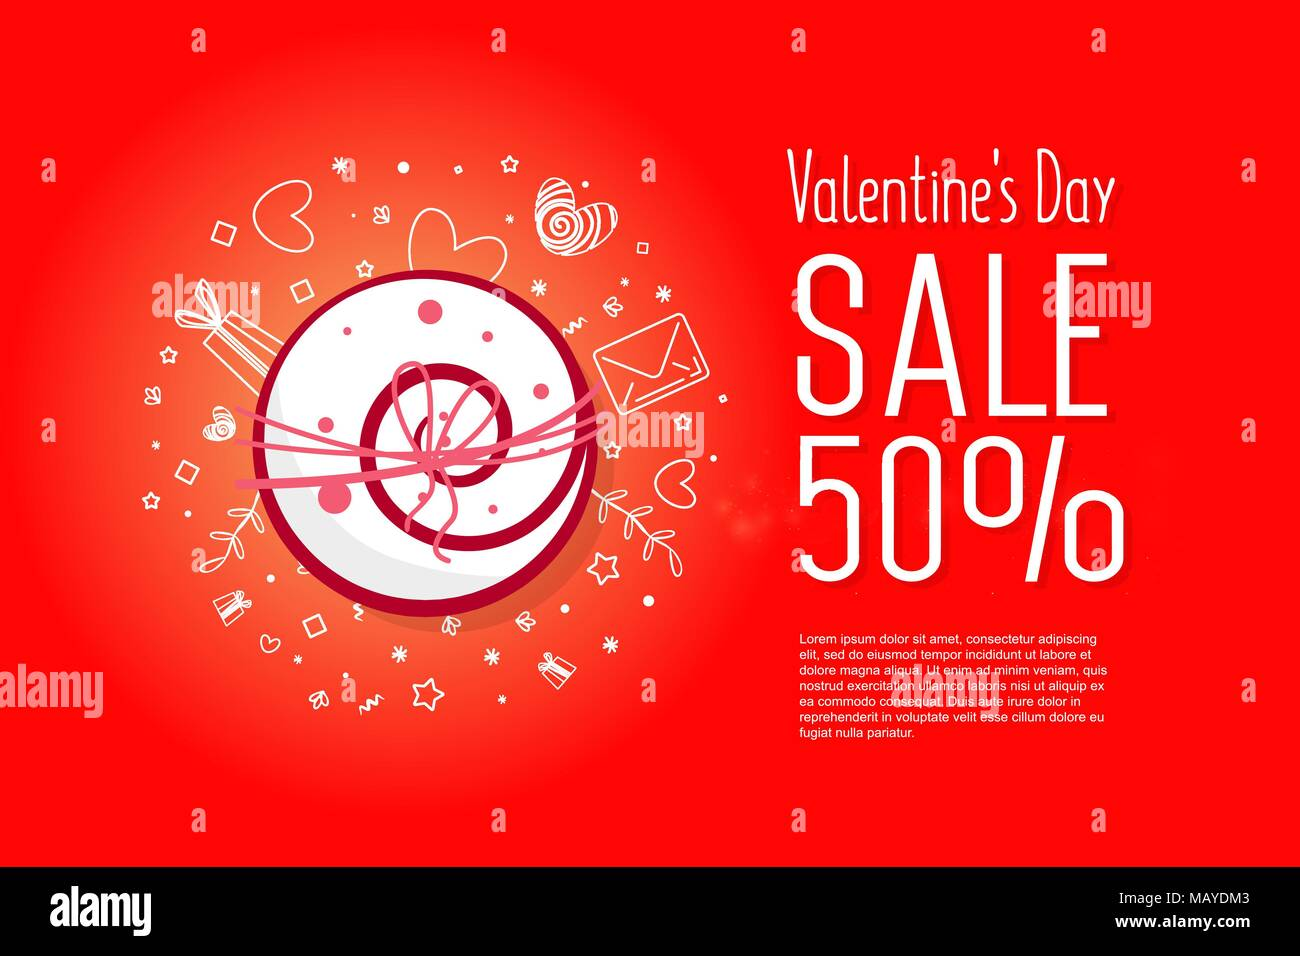 Valentine S Day Sale Celebration 50 Percent Cute Love Sale Banner